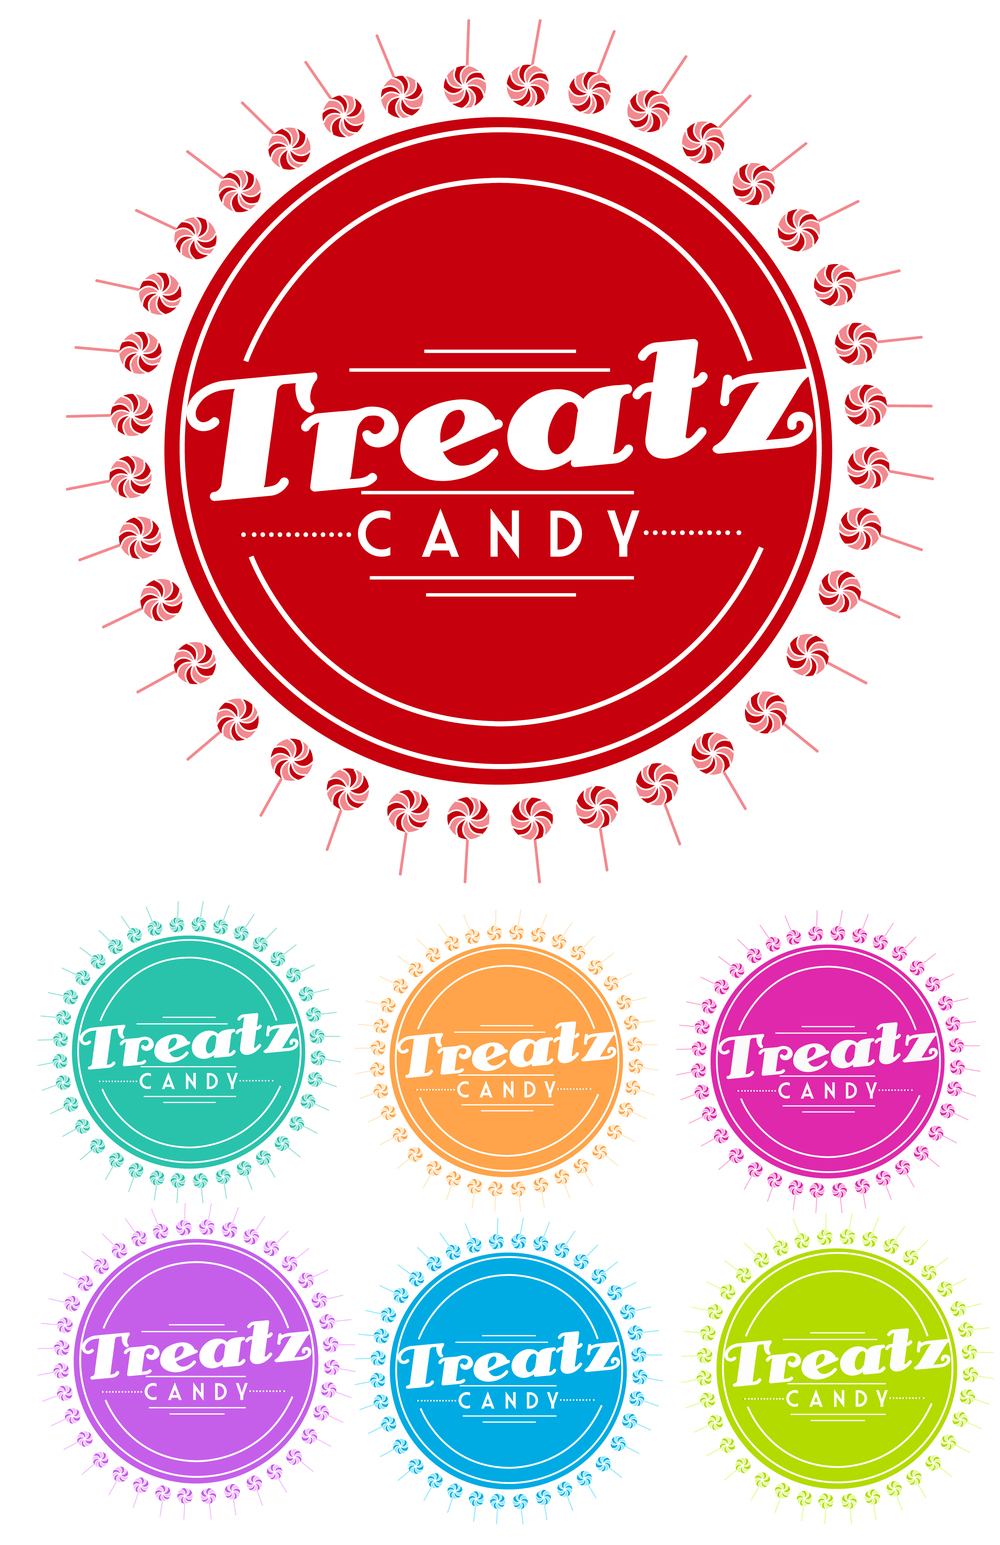 Treatz Candy Logo Proposal